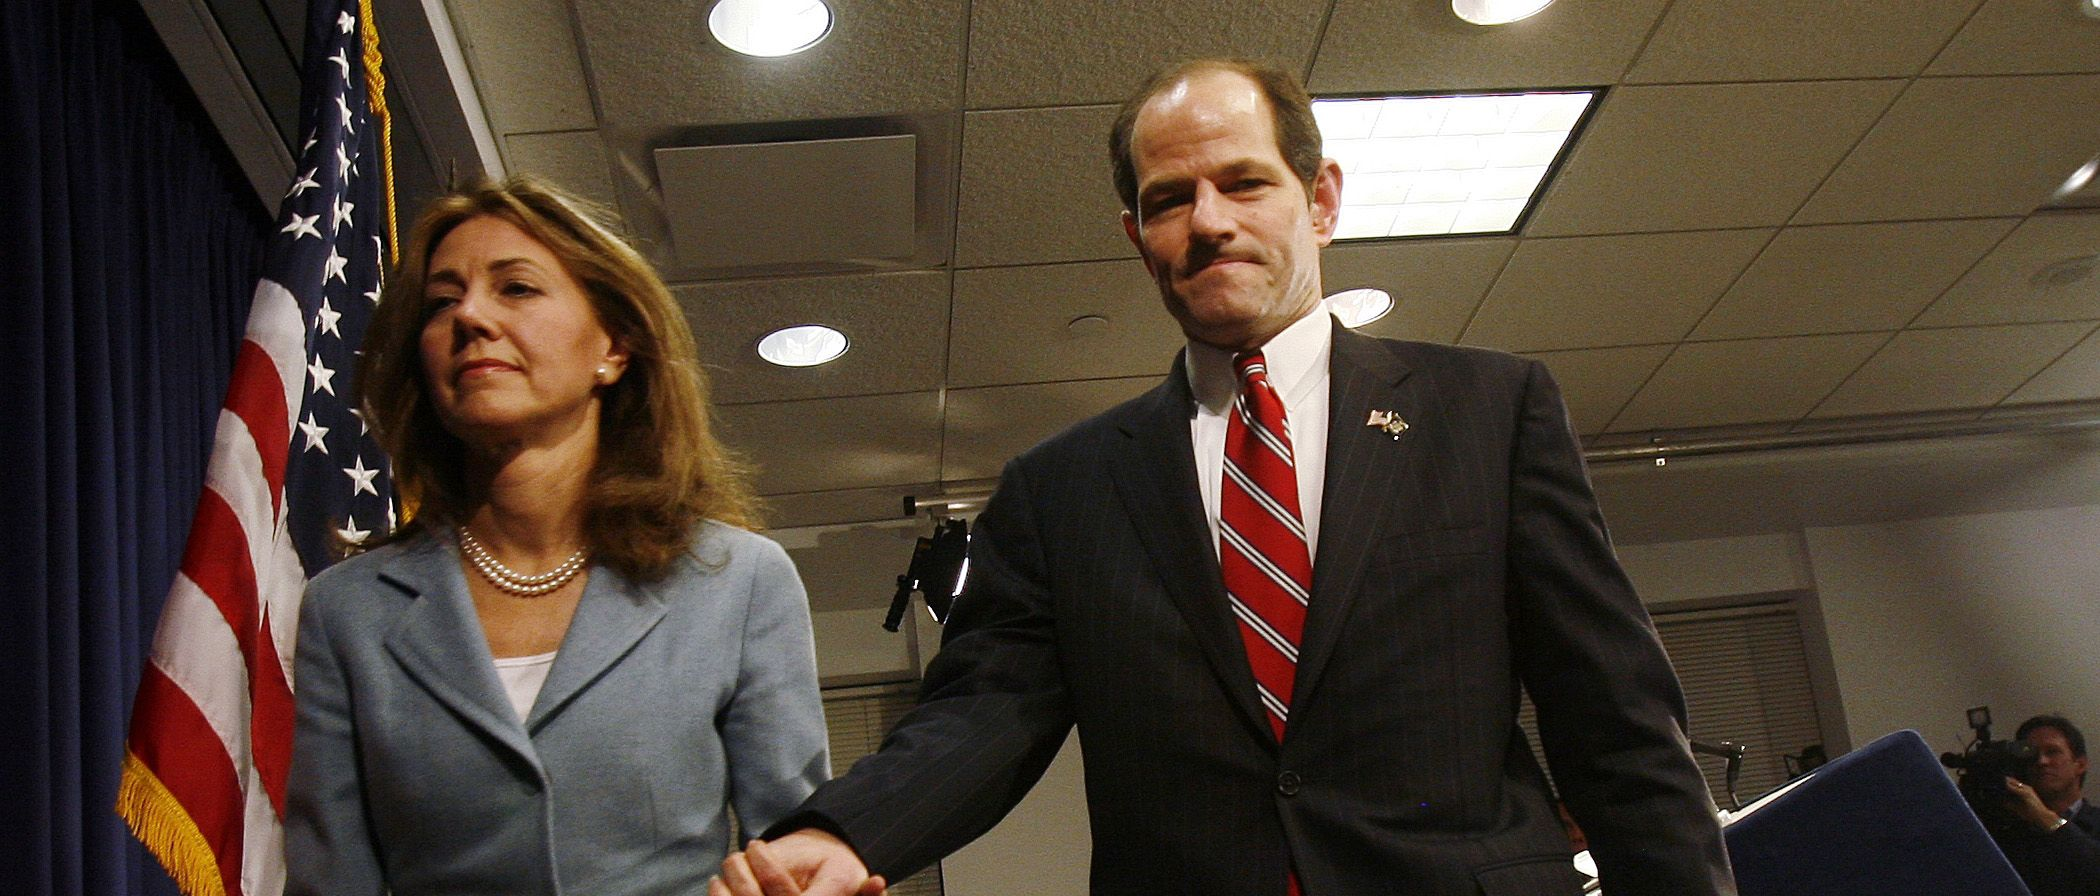 an overview of the roles of eliot spitzer and putnam issues